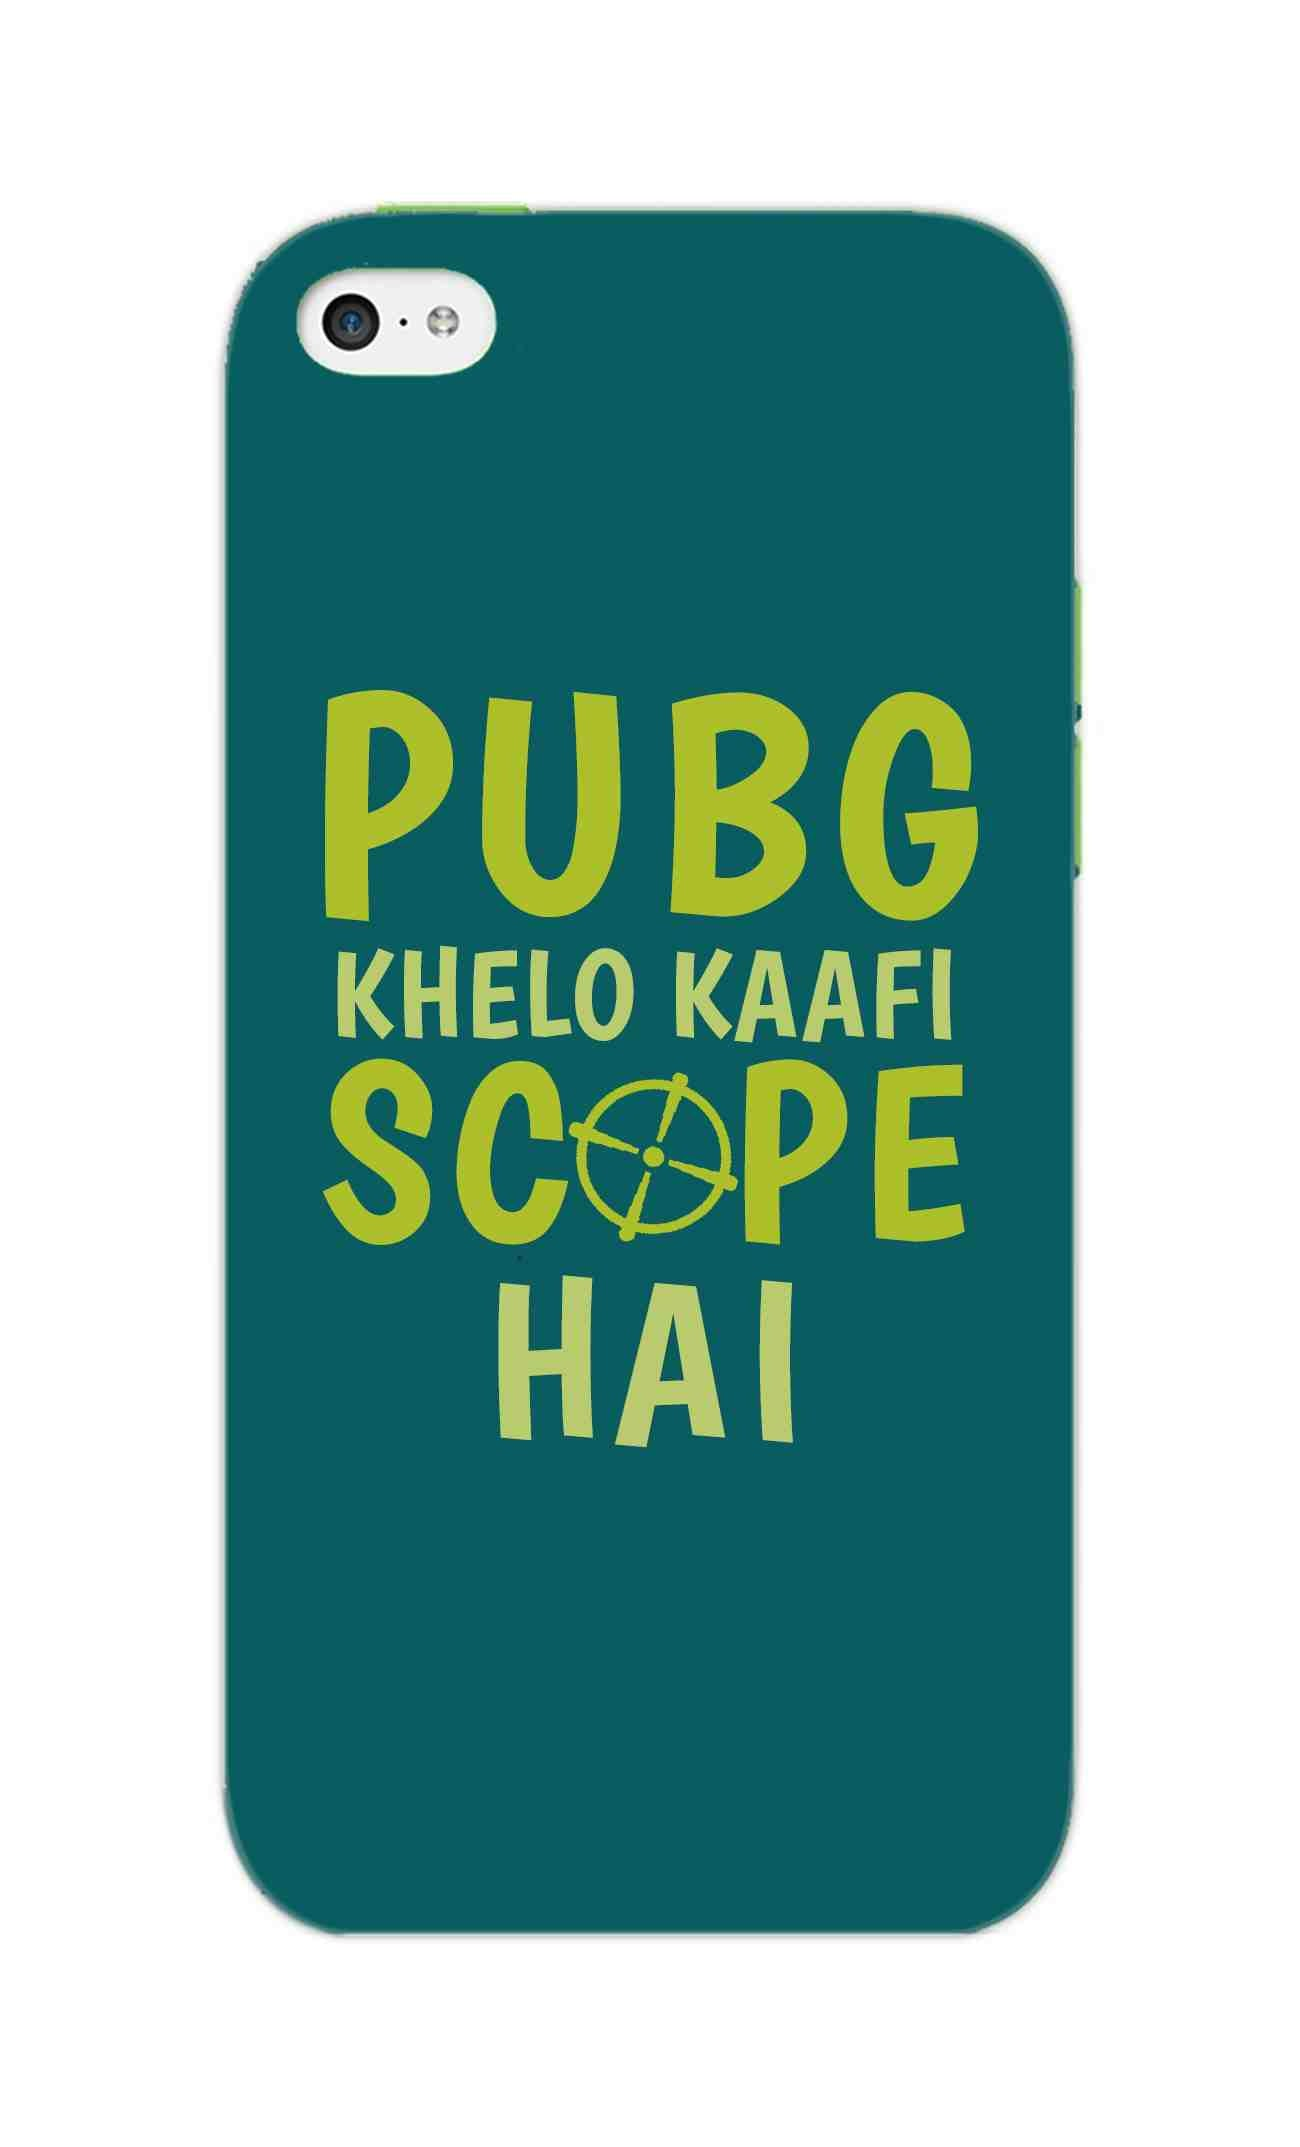 Pubg Khelo Kaafi Scope Hai Game Lovers iPhone 5S Mobile Cover Case